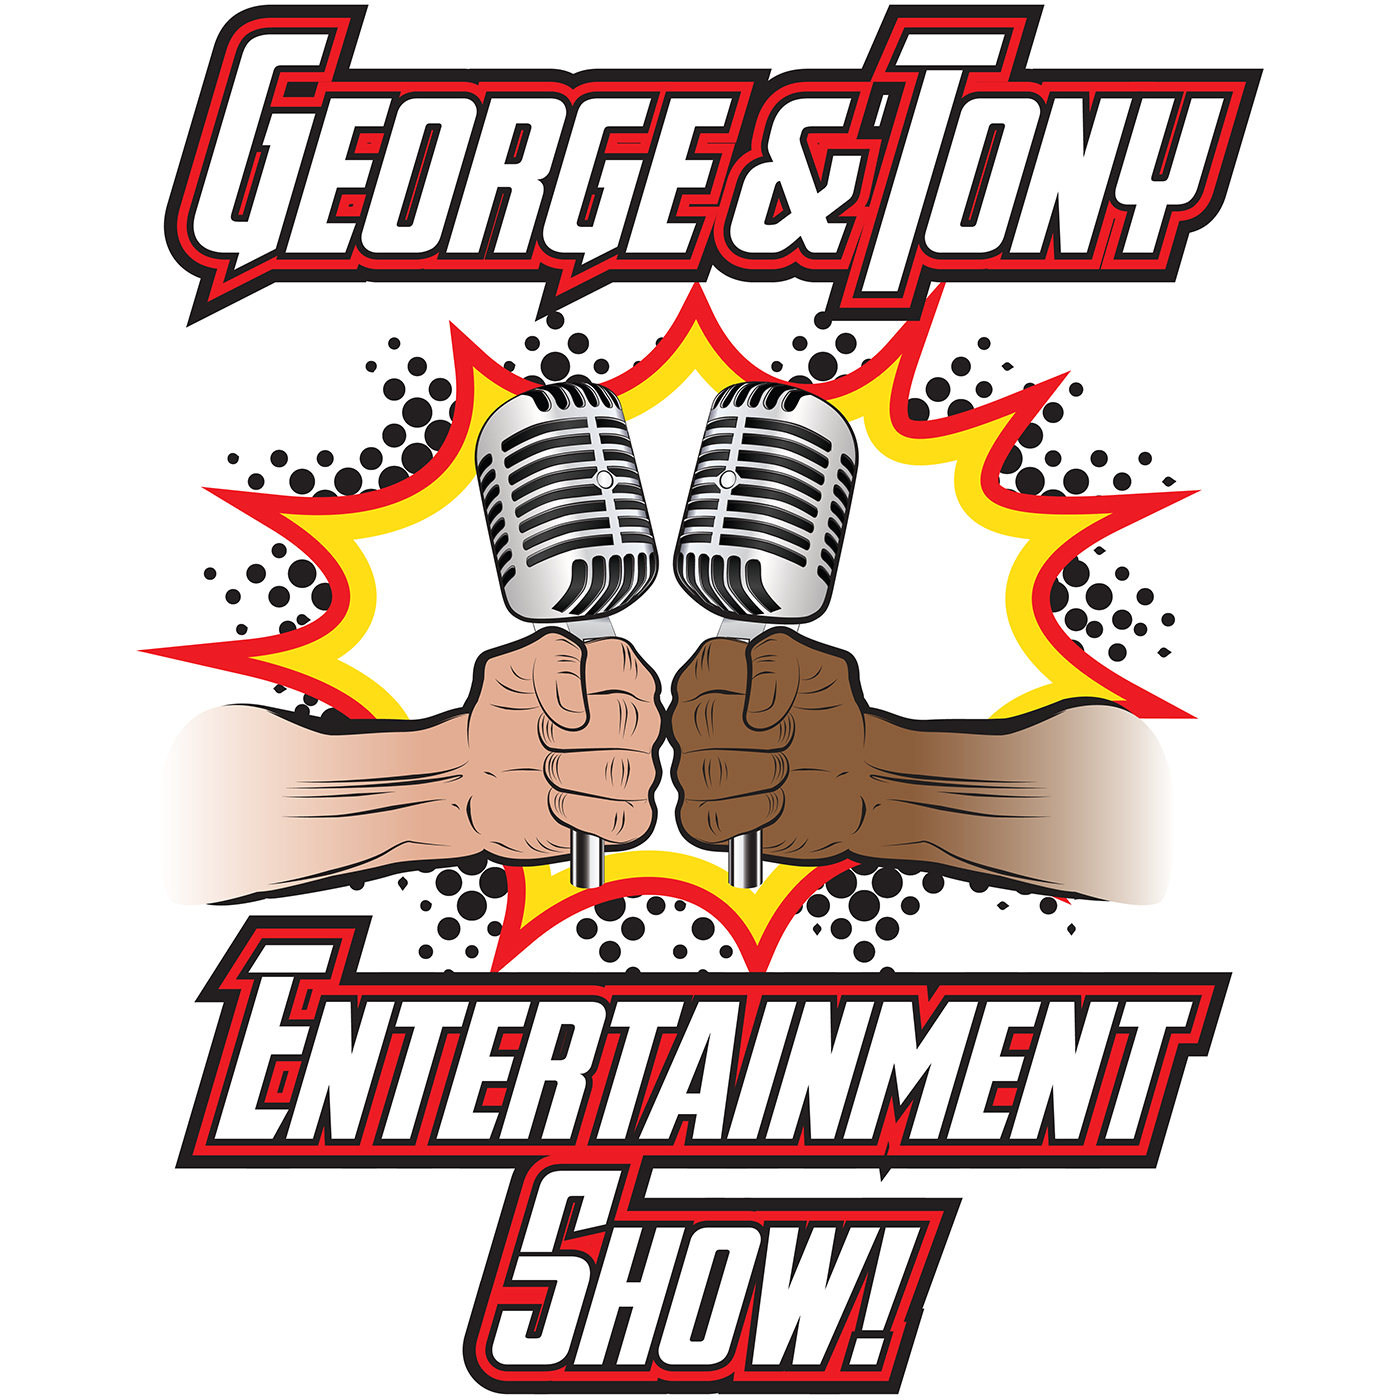 George and Tony Entertainment Show #99